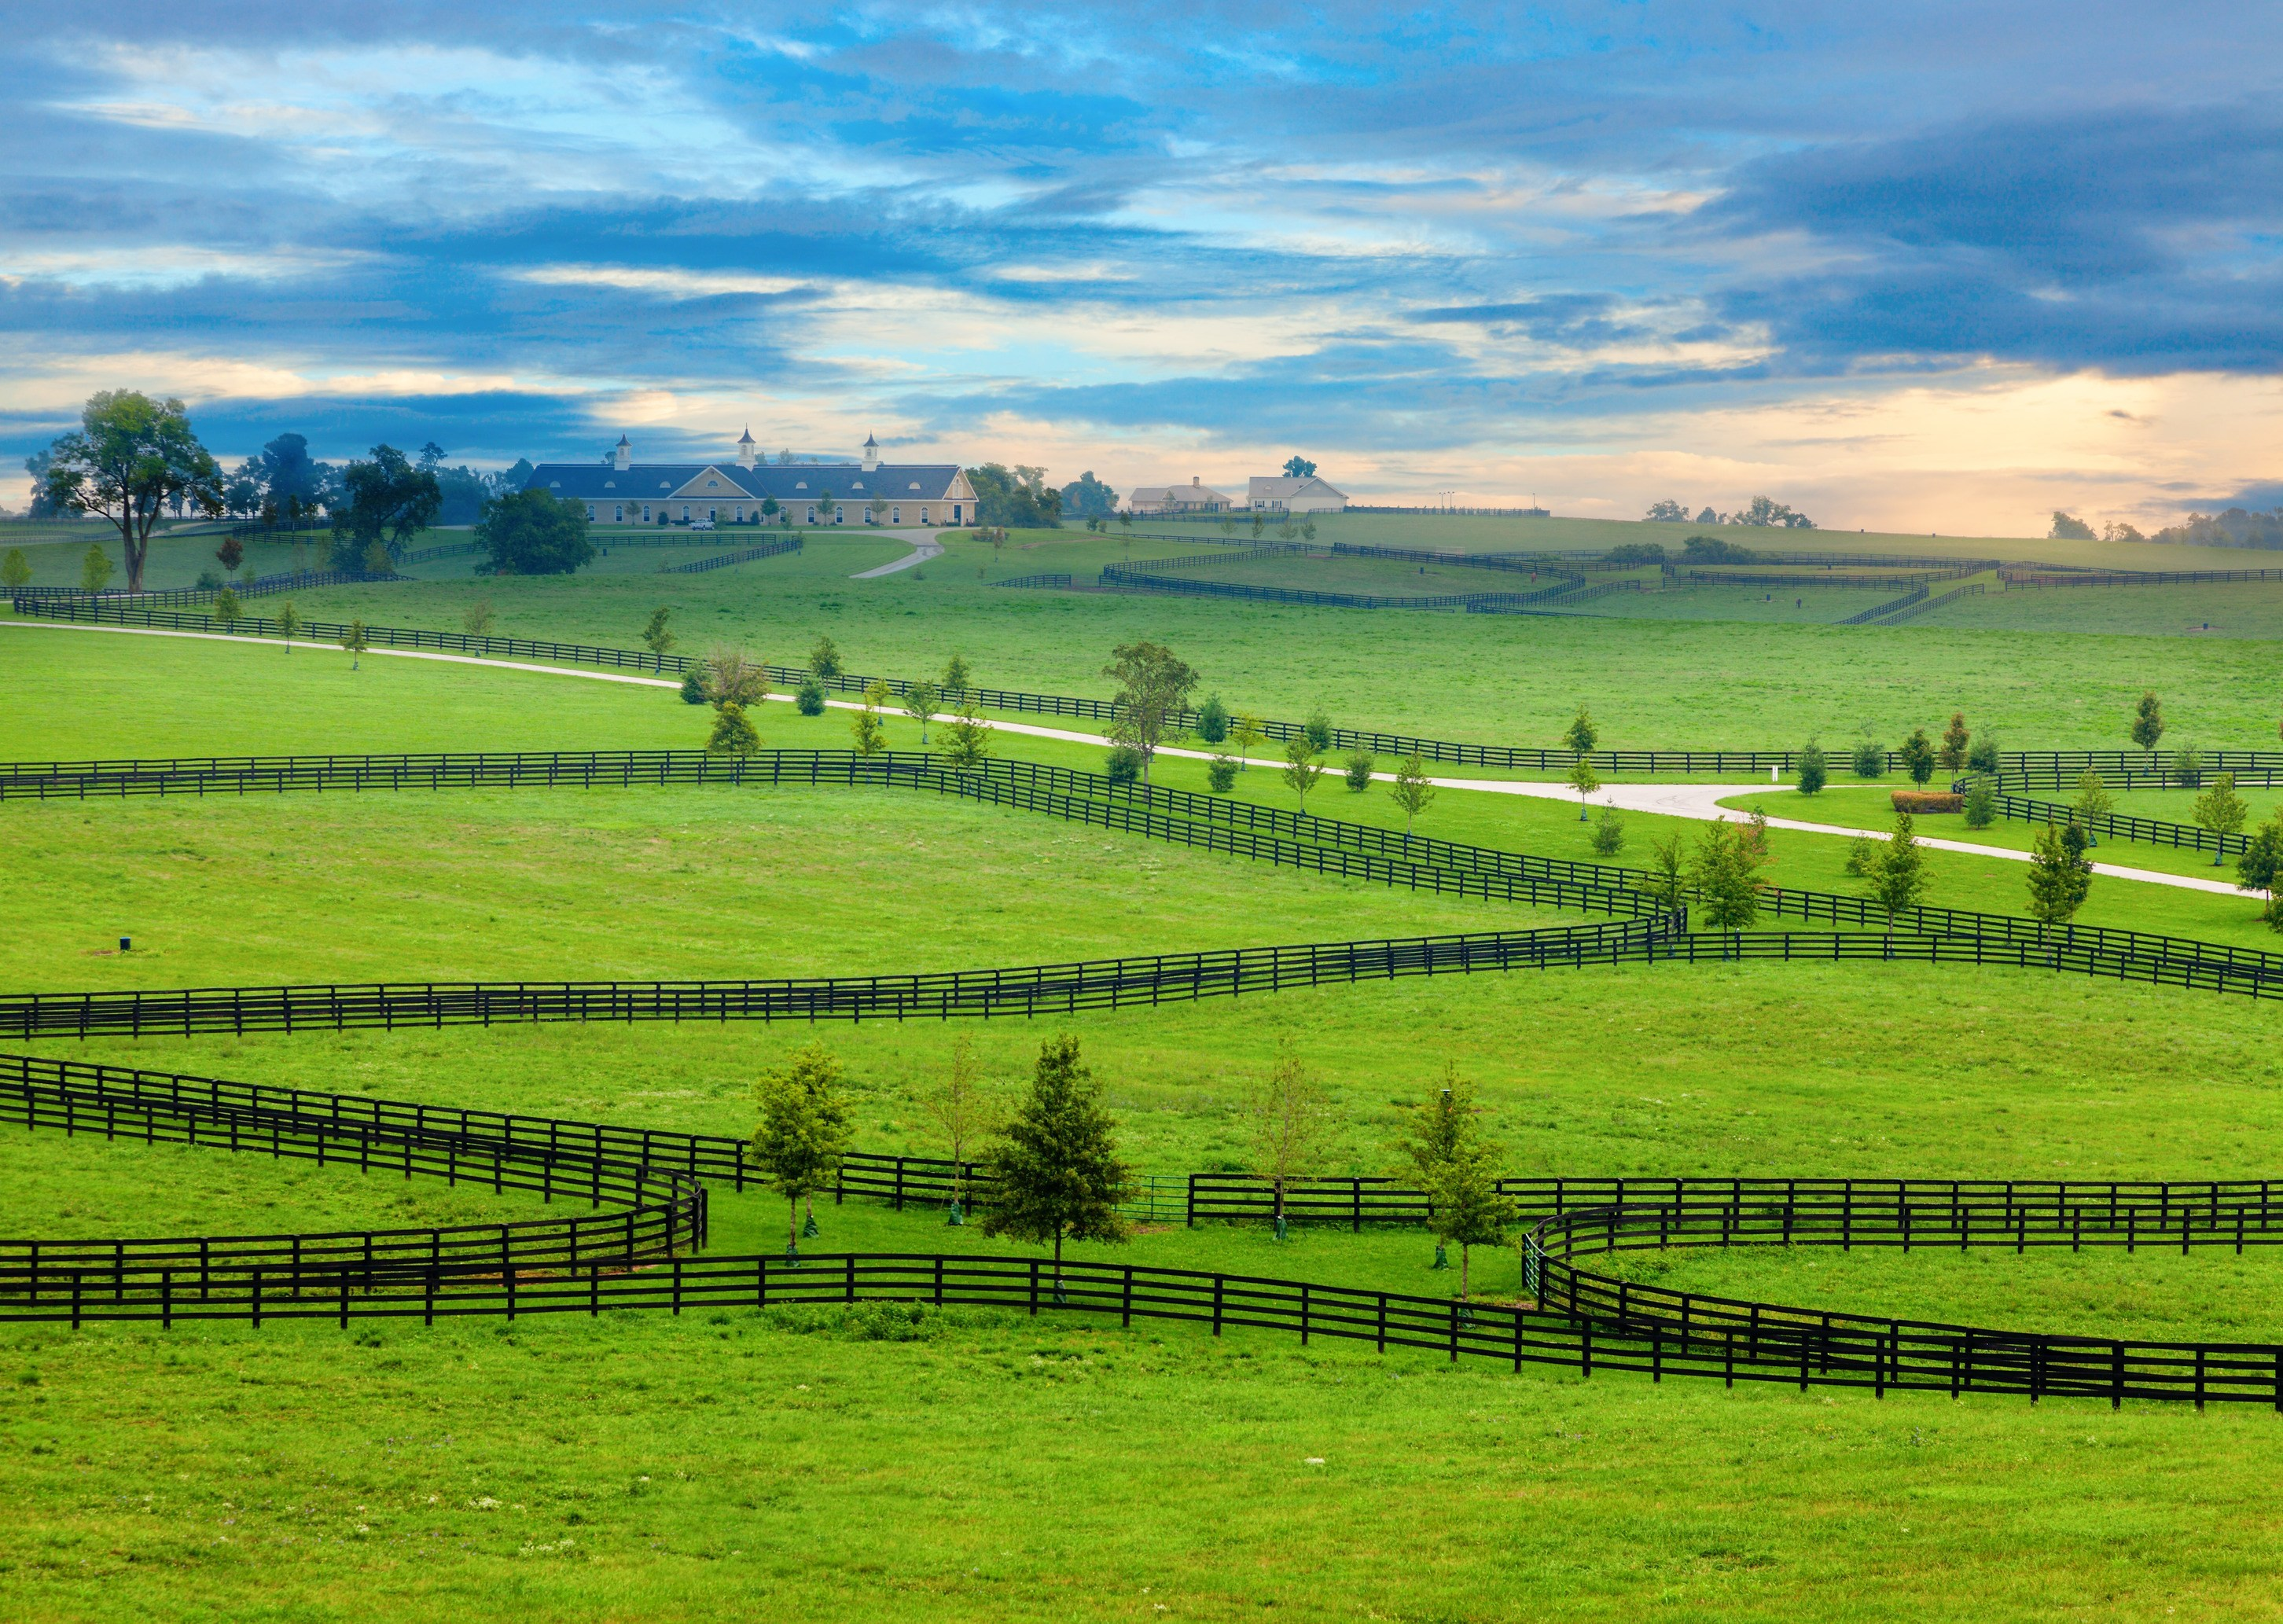 photodune-4161865-horse-country-l